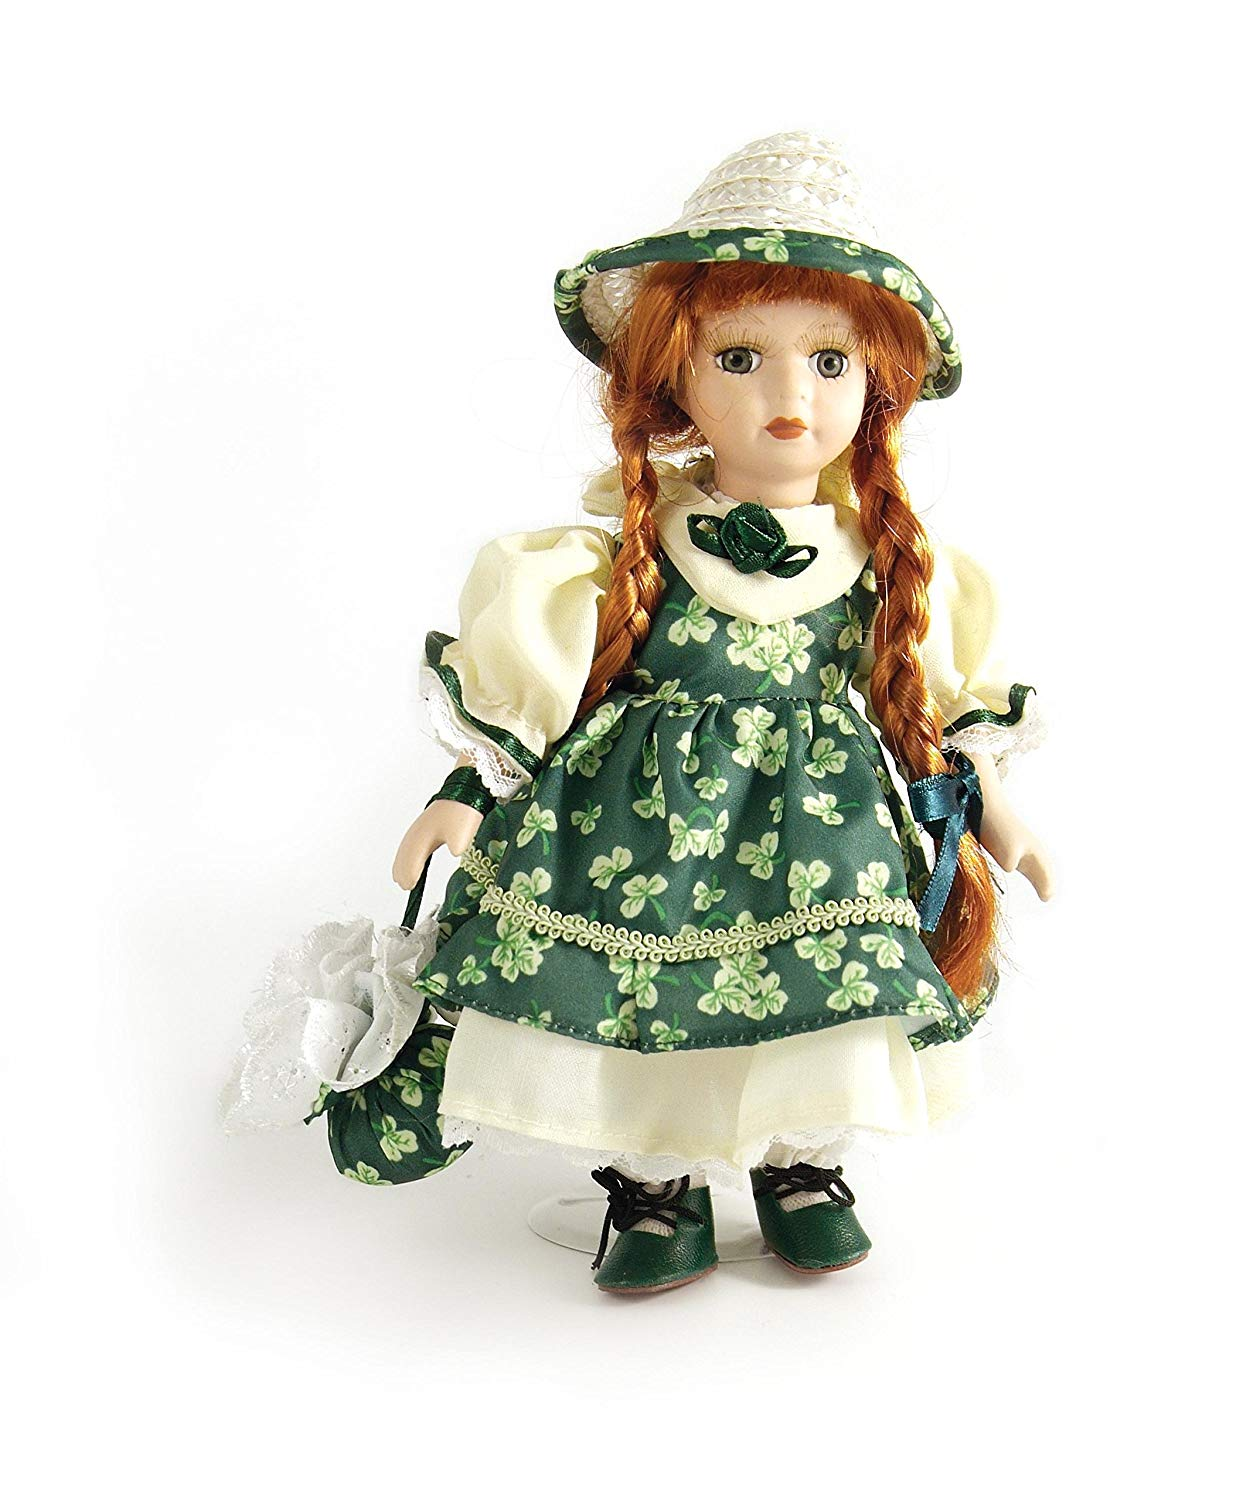 7. Carrolls Irish Gifts 8 Jenny Standing Porcelain Doll With Green Shamrock Dress